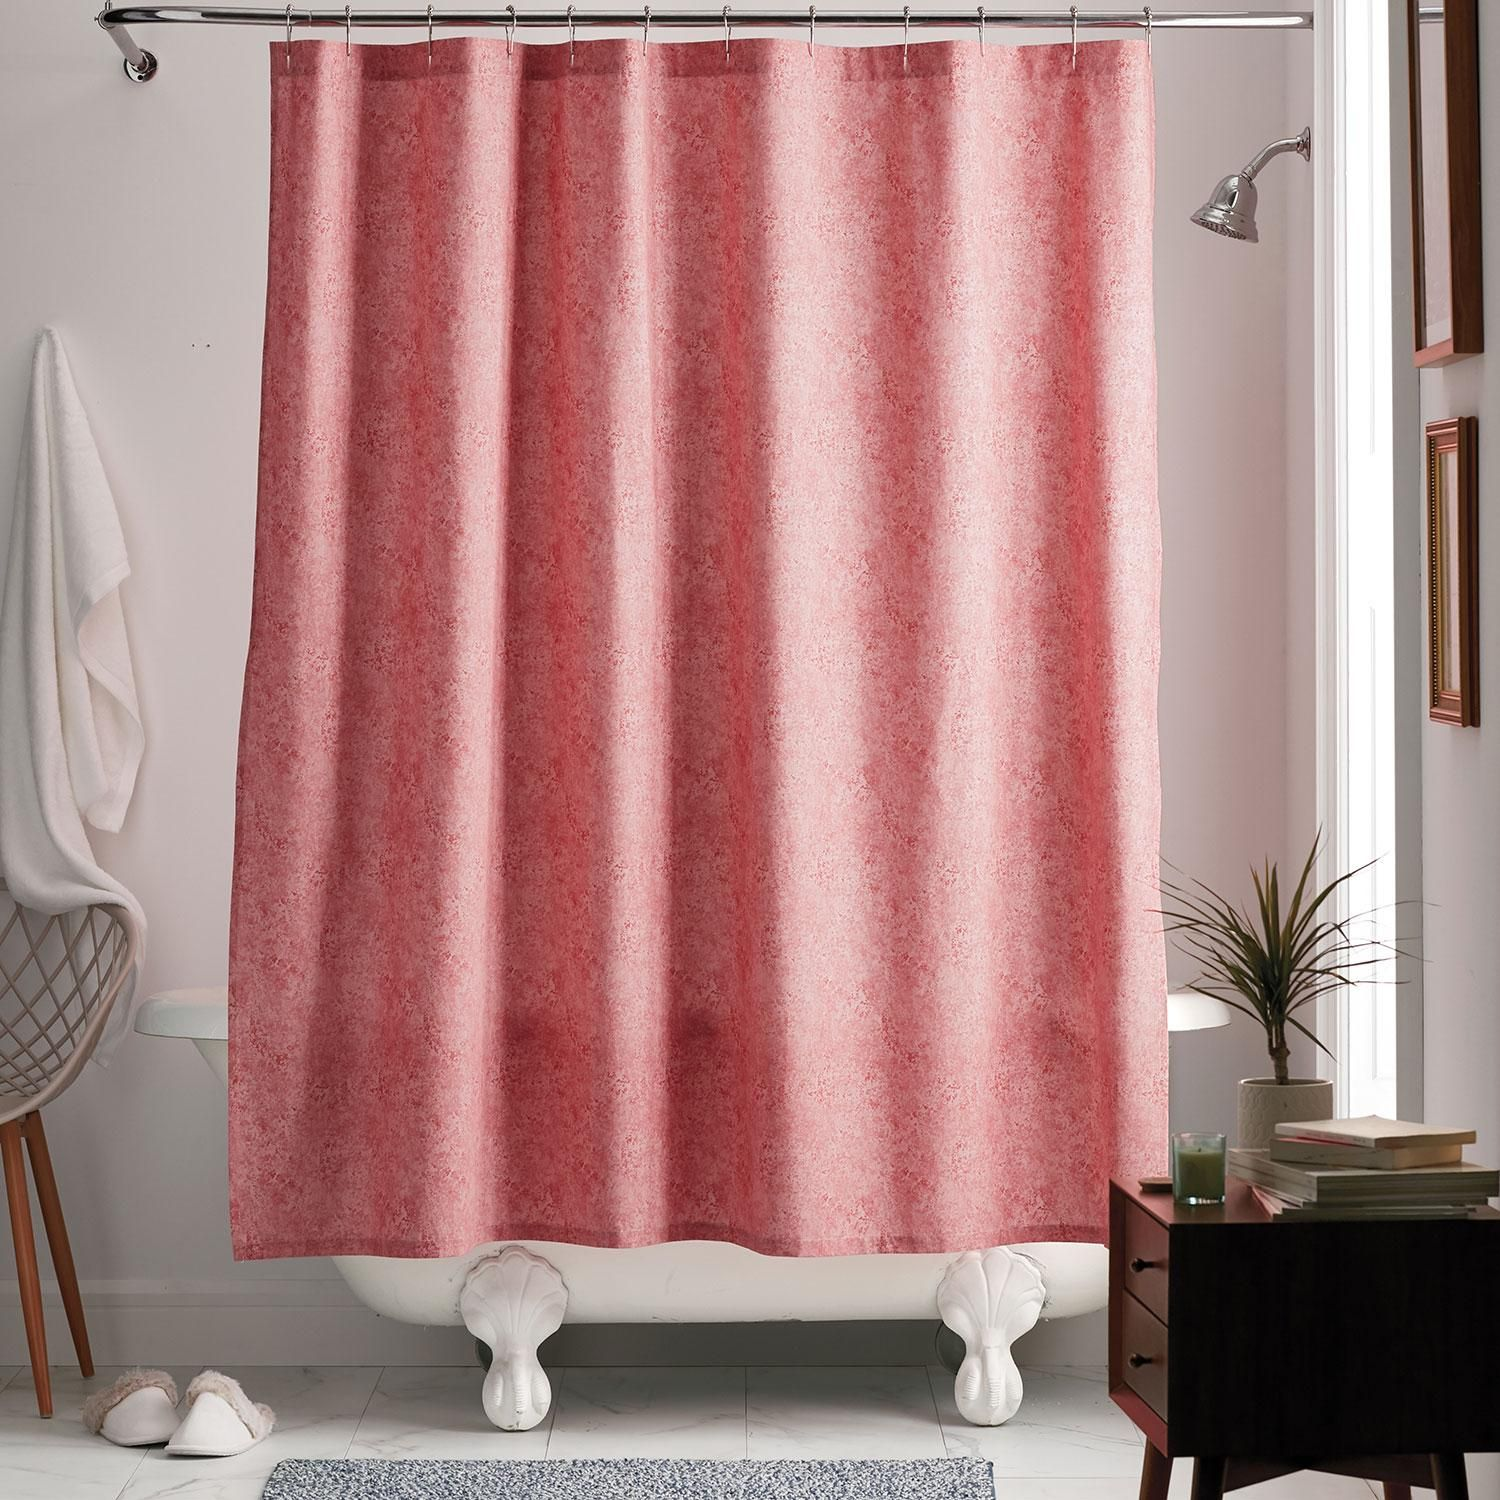 Cstudio Home Vintage Wash Shower Curtain The Company Store The